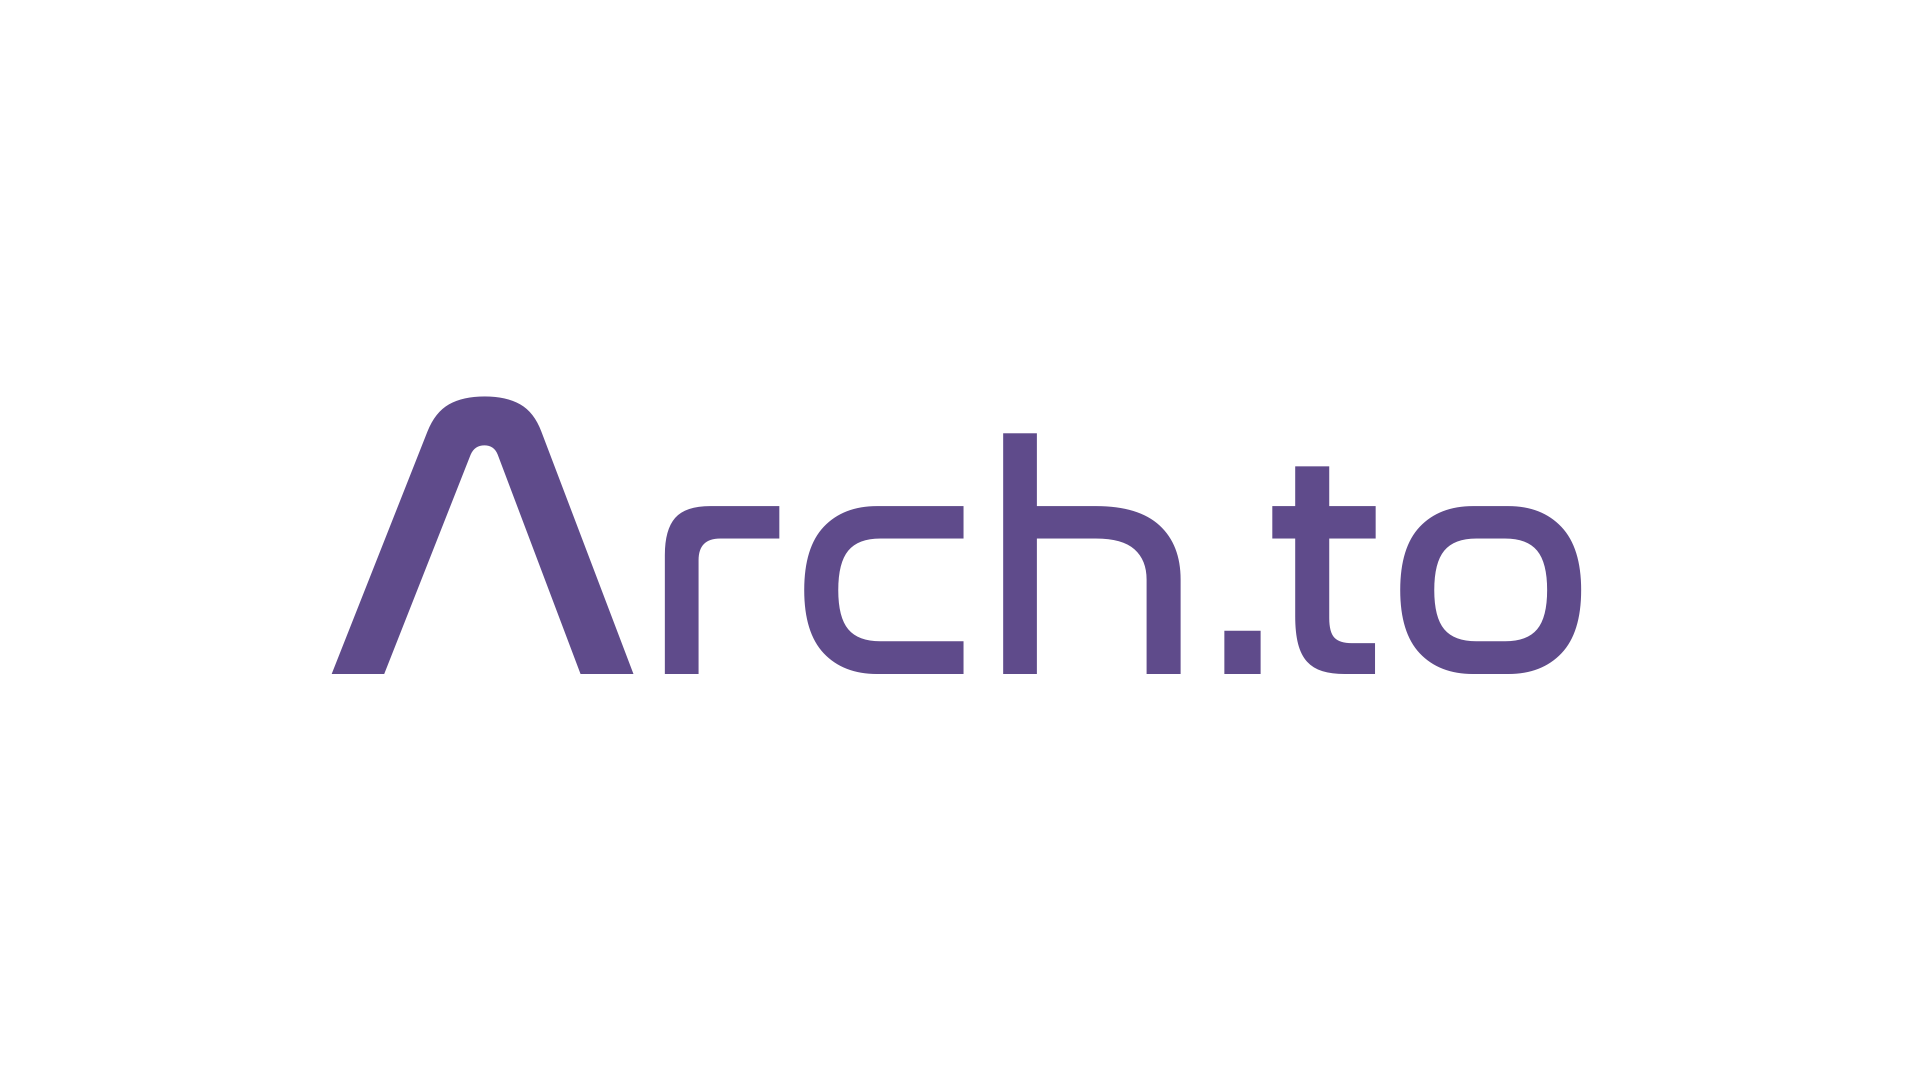 Arch.to logo